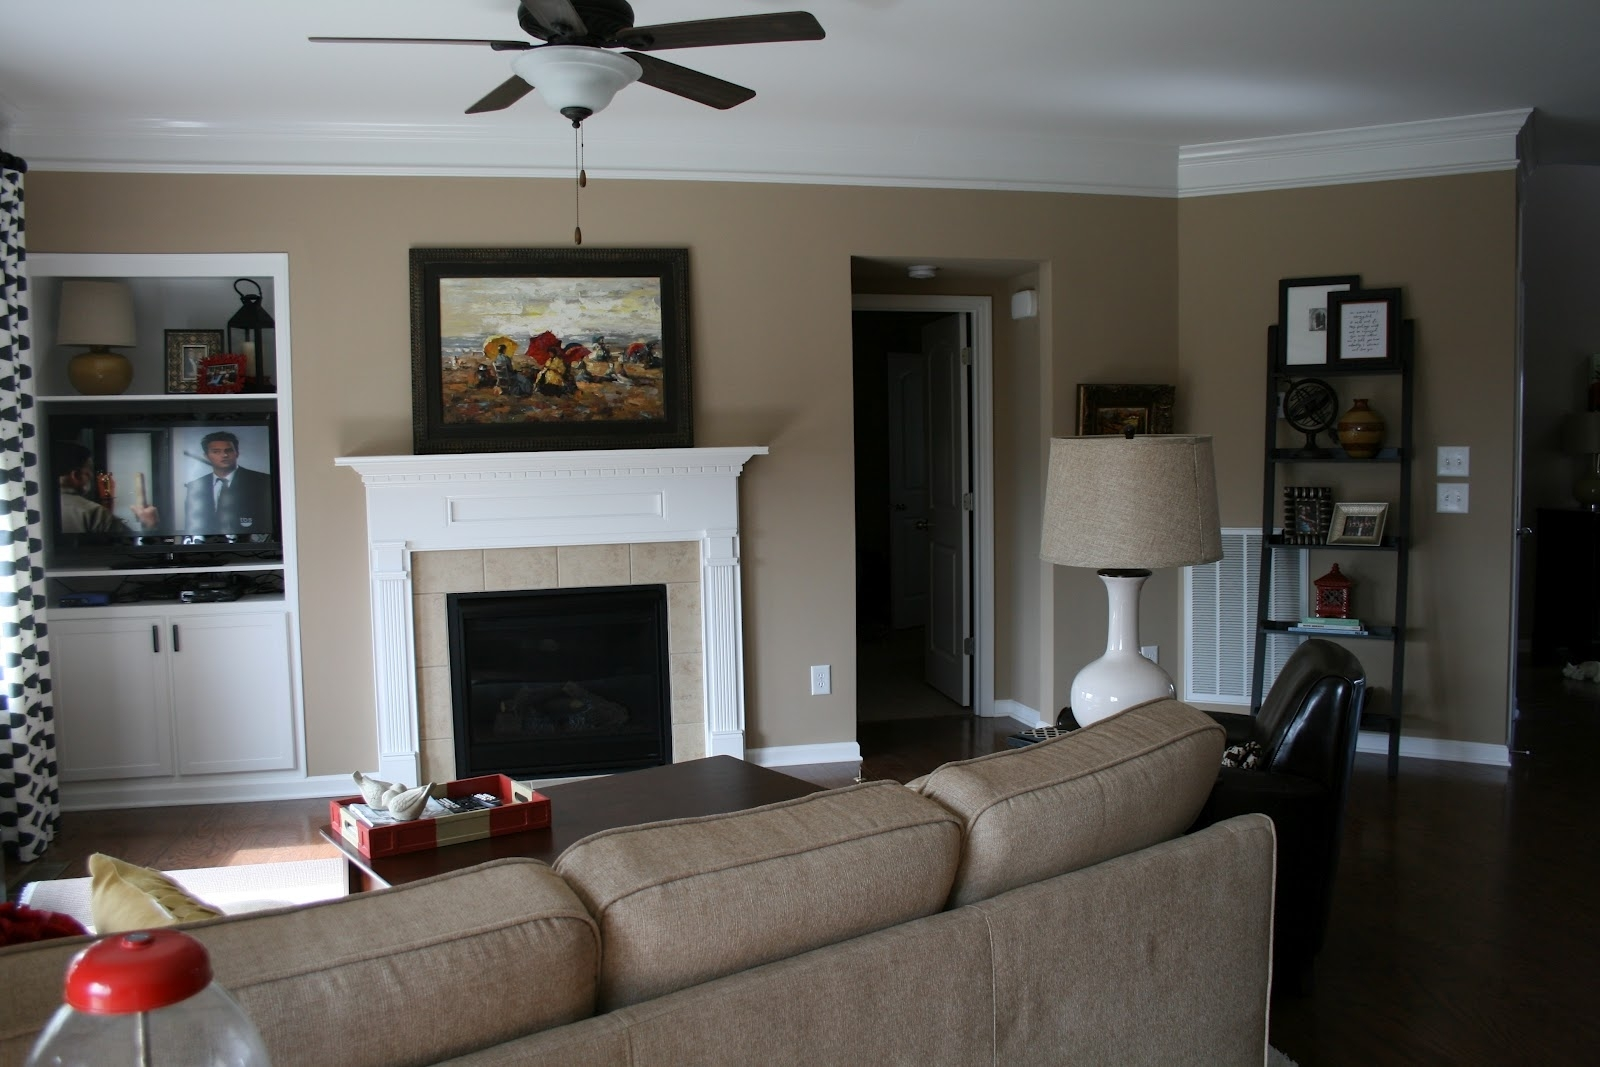 Tan Accent Wall Brown Accent Wall Living Room Ideas Wall Colors Throughout 2018 Wall Accents For Tan Room (View 14 of 15)